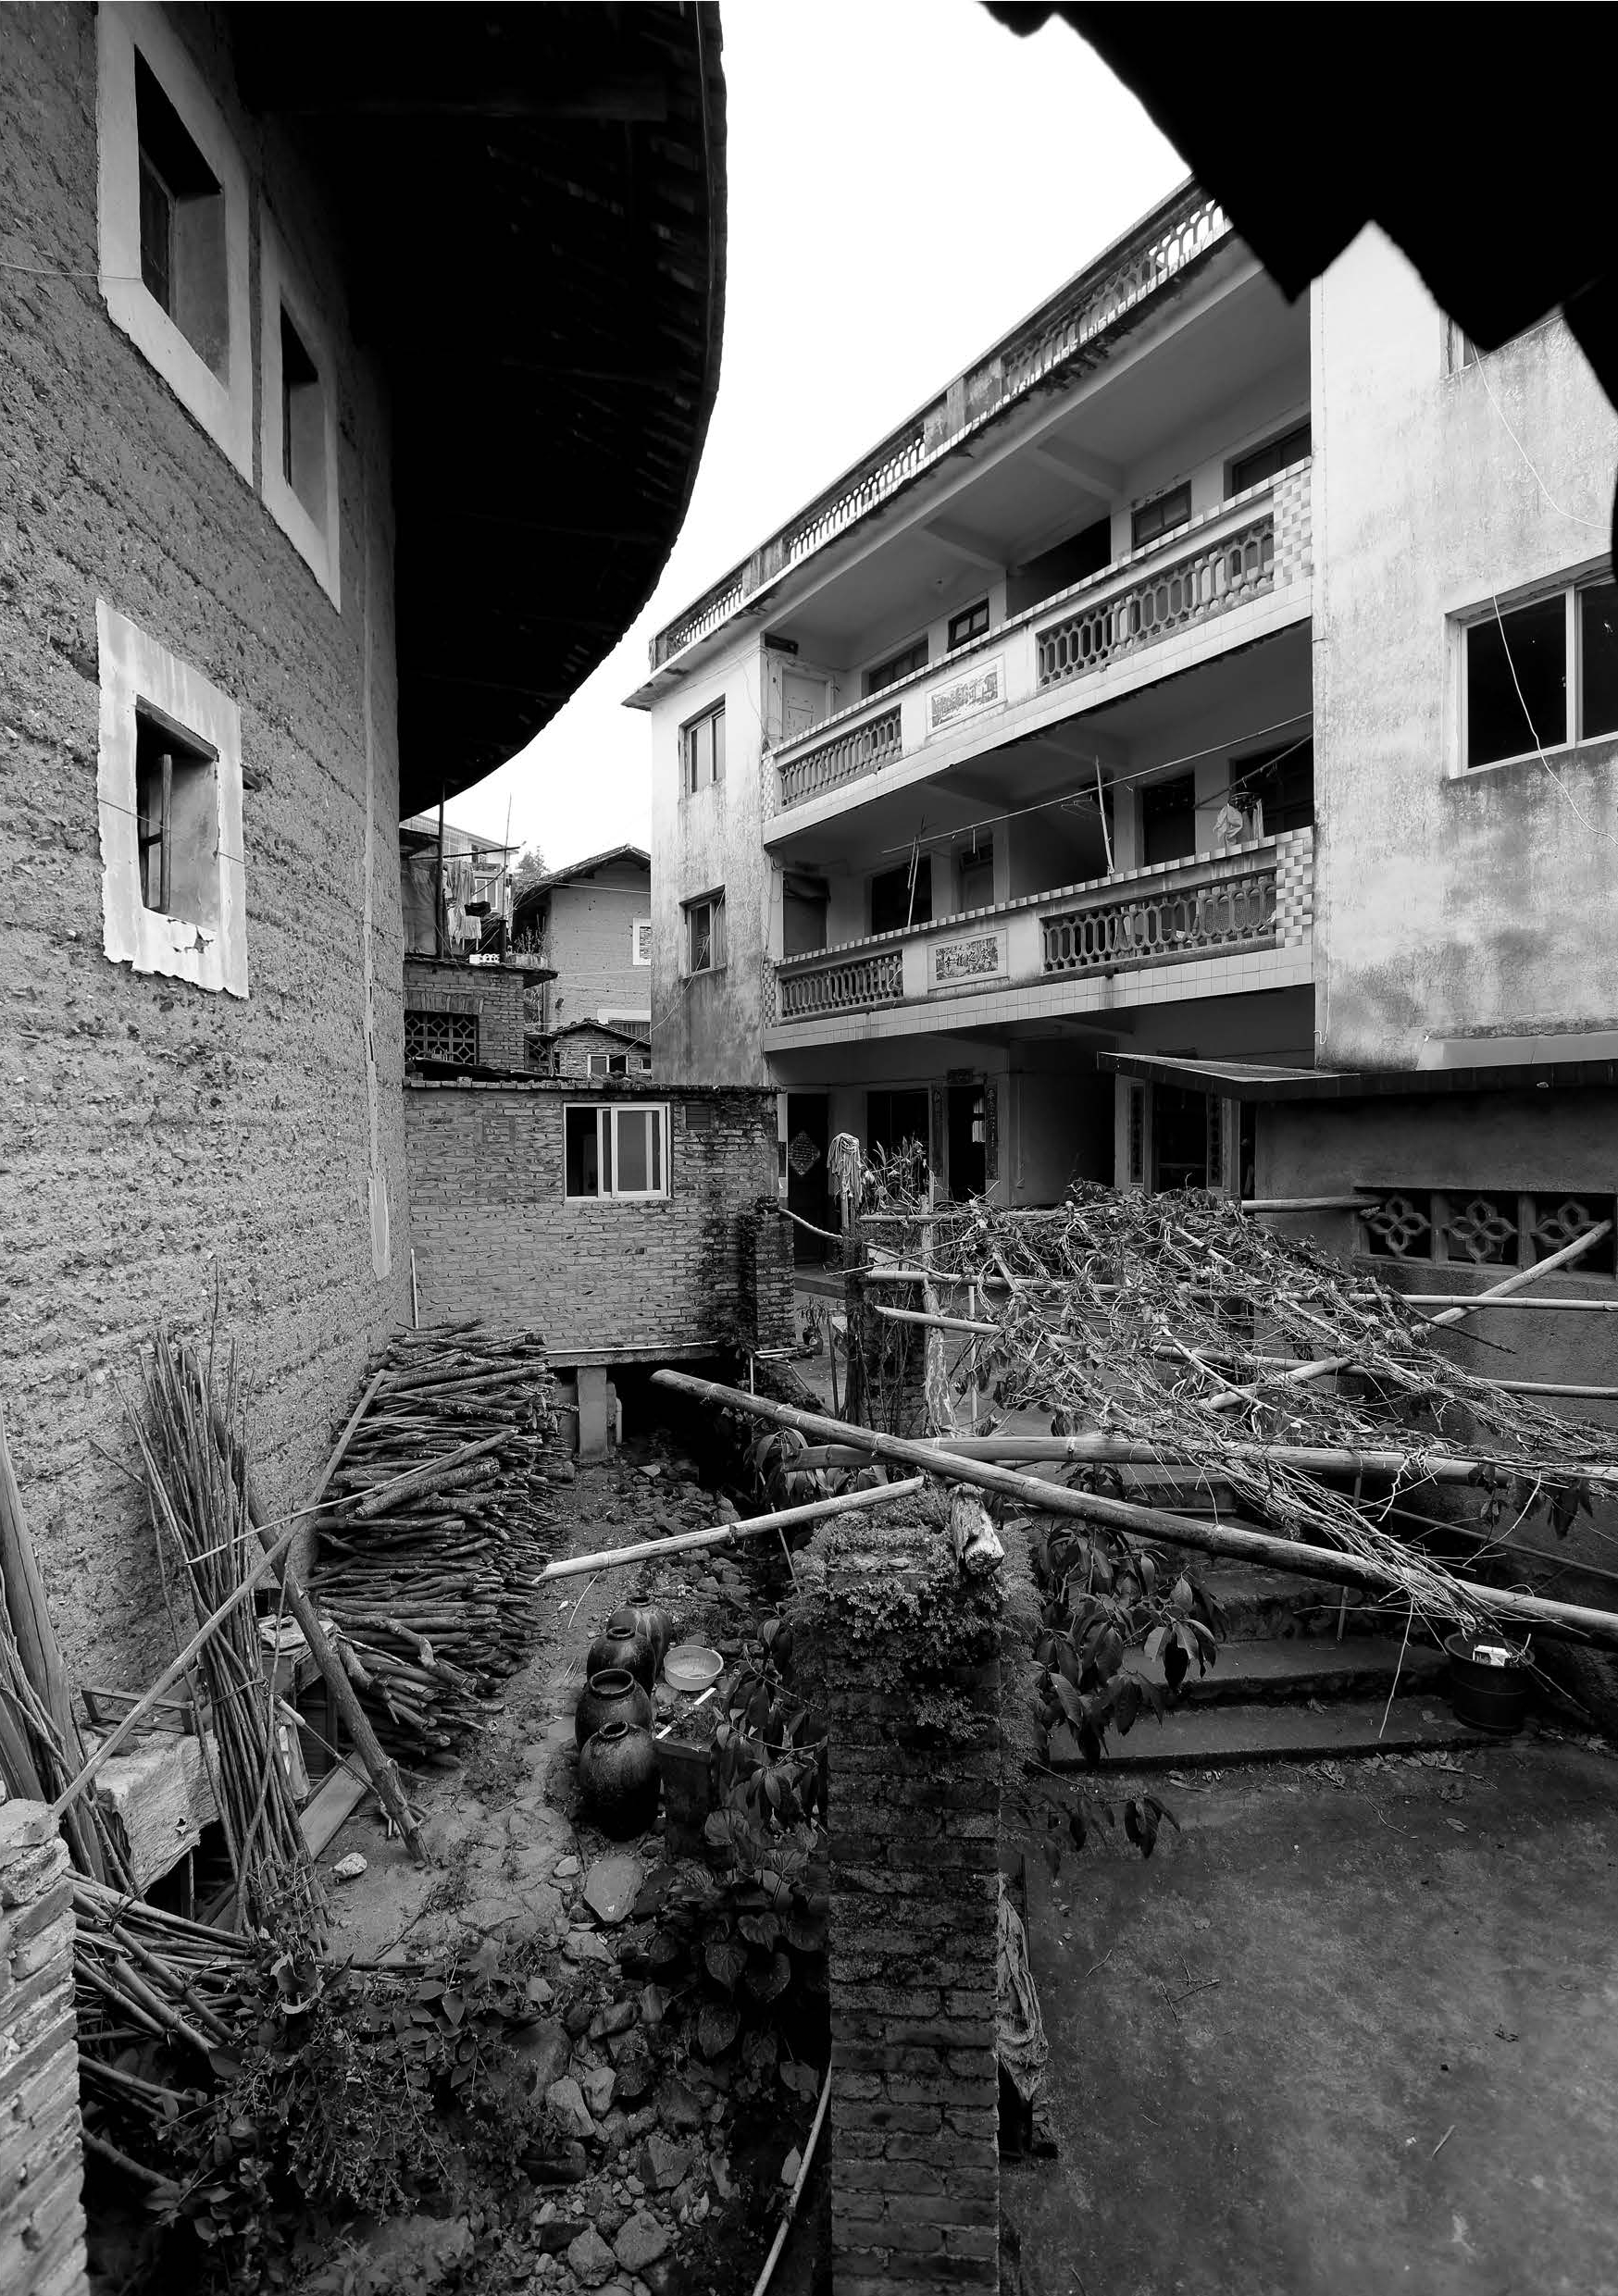 Renovation toolbox: Strategies for adapting vernacular architecture in rural China